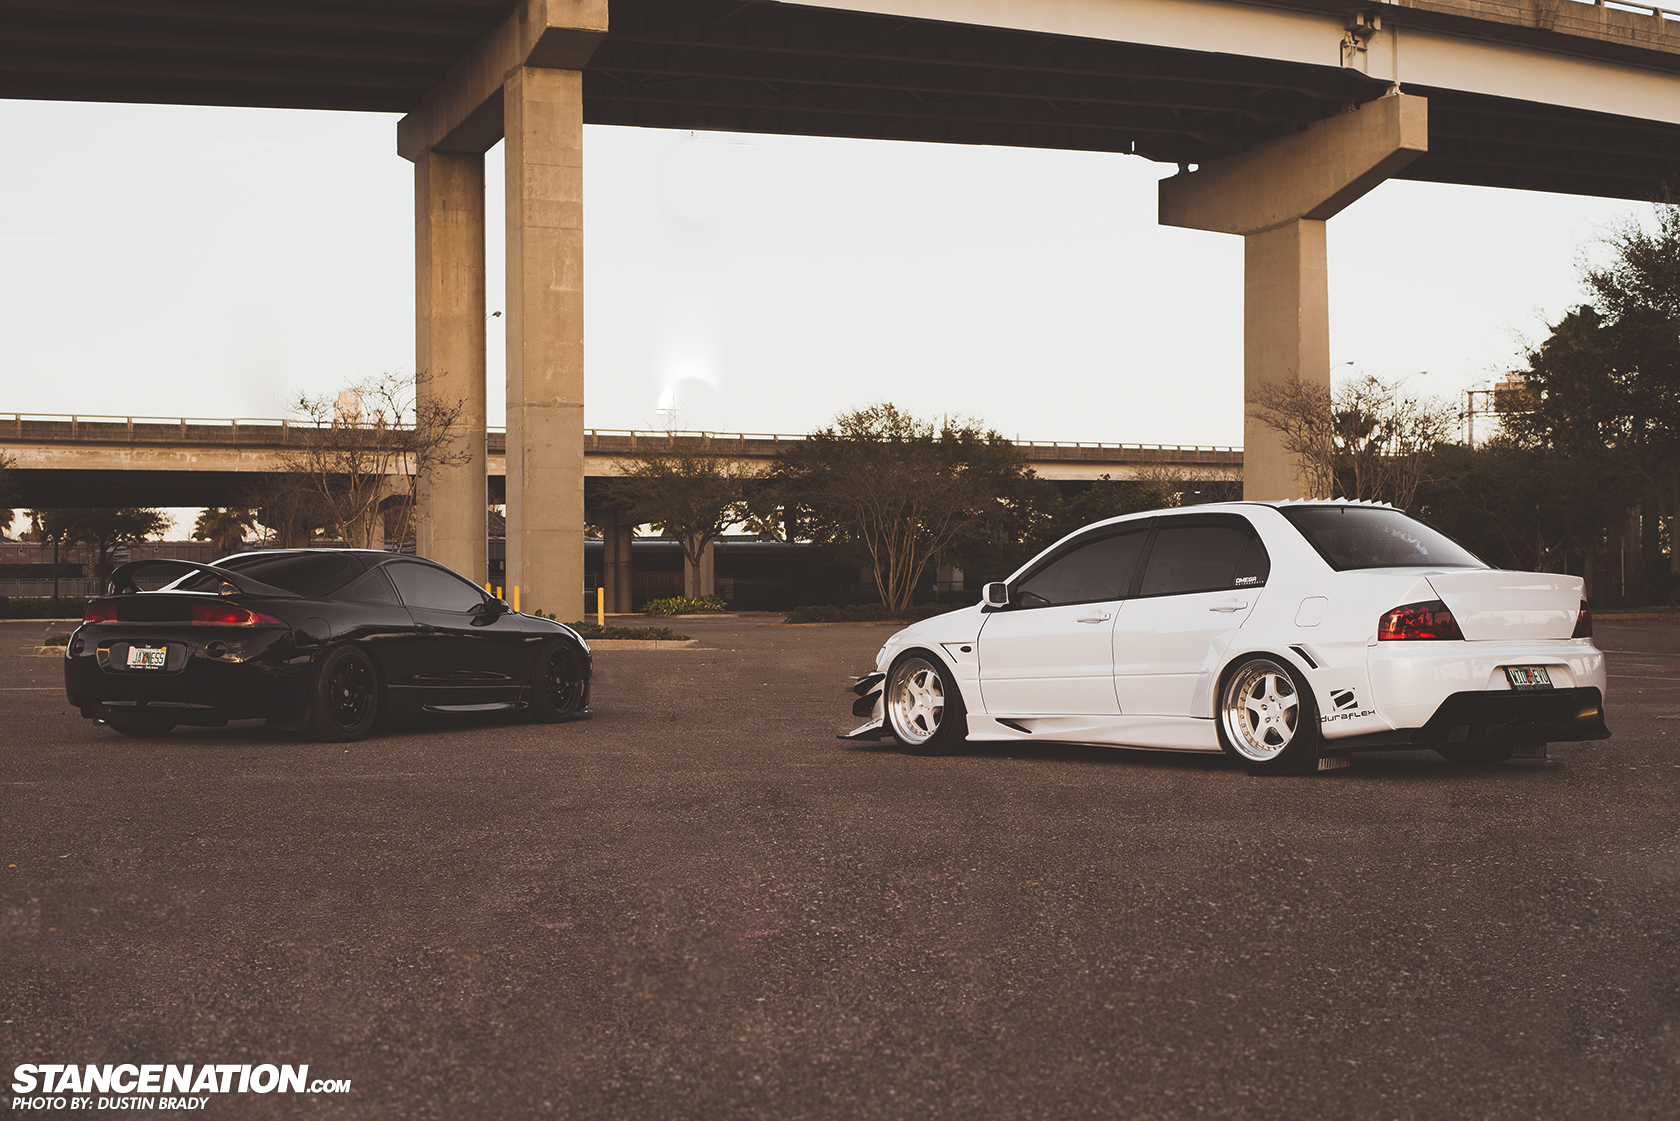 His Hers Justin Jaxs Mean Evo Eclipse Stancenation 2g Headlight Wiring Harness Over The Years It Has Been No Secret That Mitsubishi Dsm Is One Of Most Popular Platforms And Its Not Hard To See Why